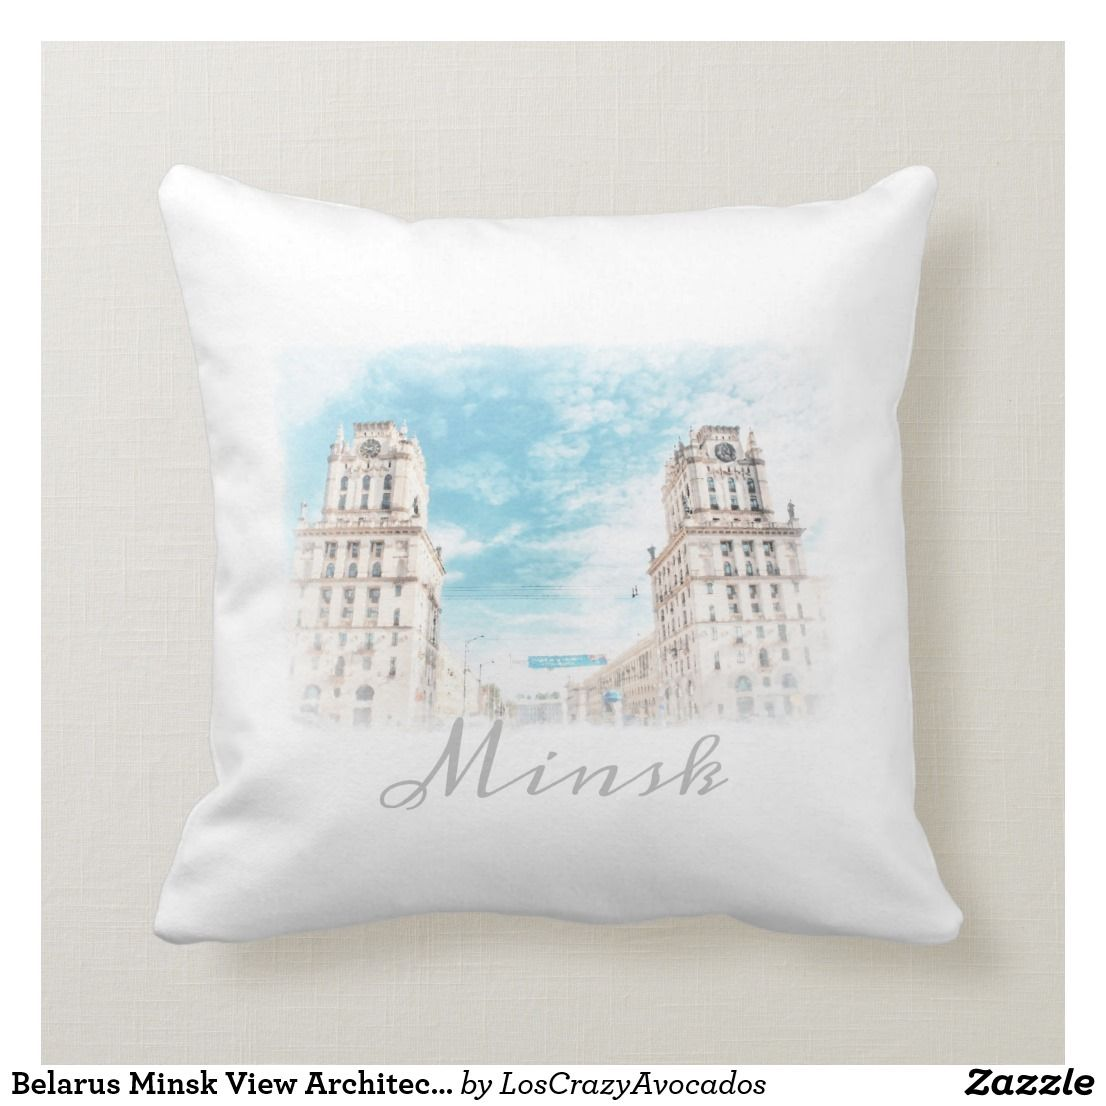 Belarus Minsk View Architecture Throw Pillow Pillows Decorative Throw Pillows Throw Pillows